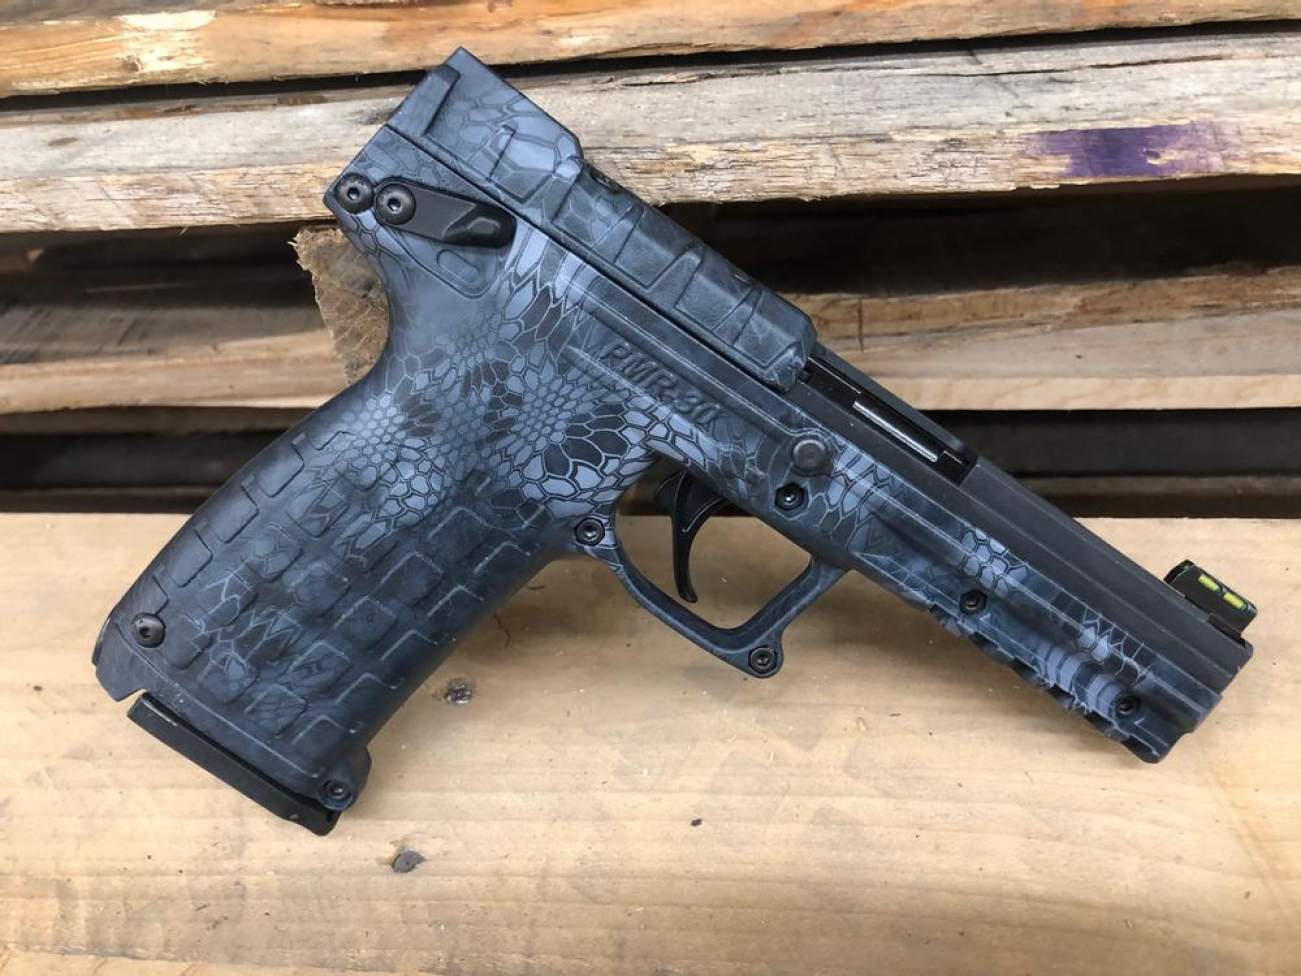 Kel-Tec's Deadly PMR-30 Pistol Holds 17 Rounds, But What Is It Good For?